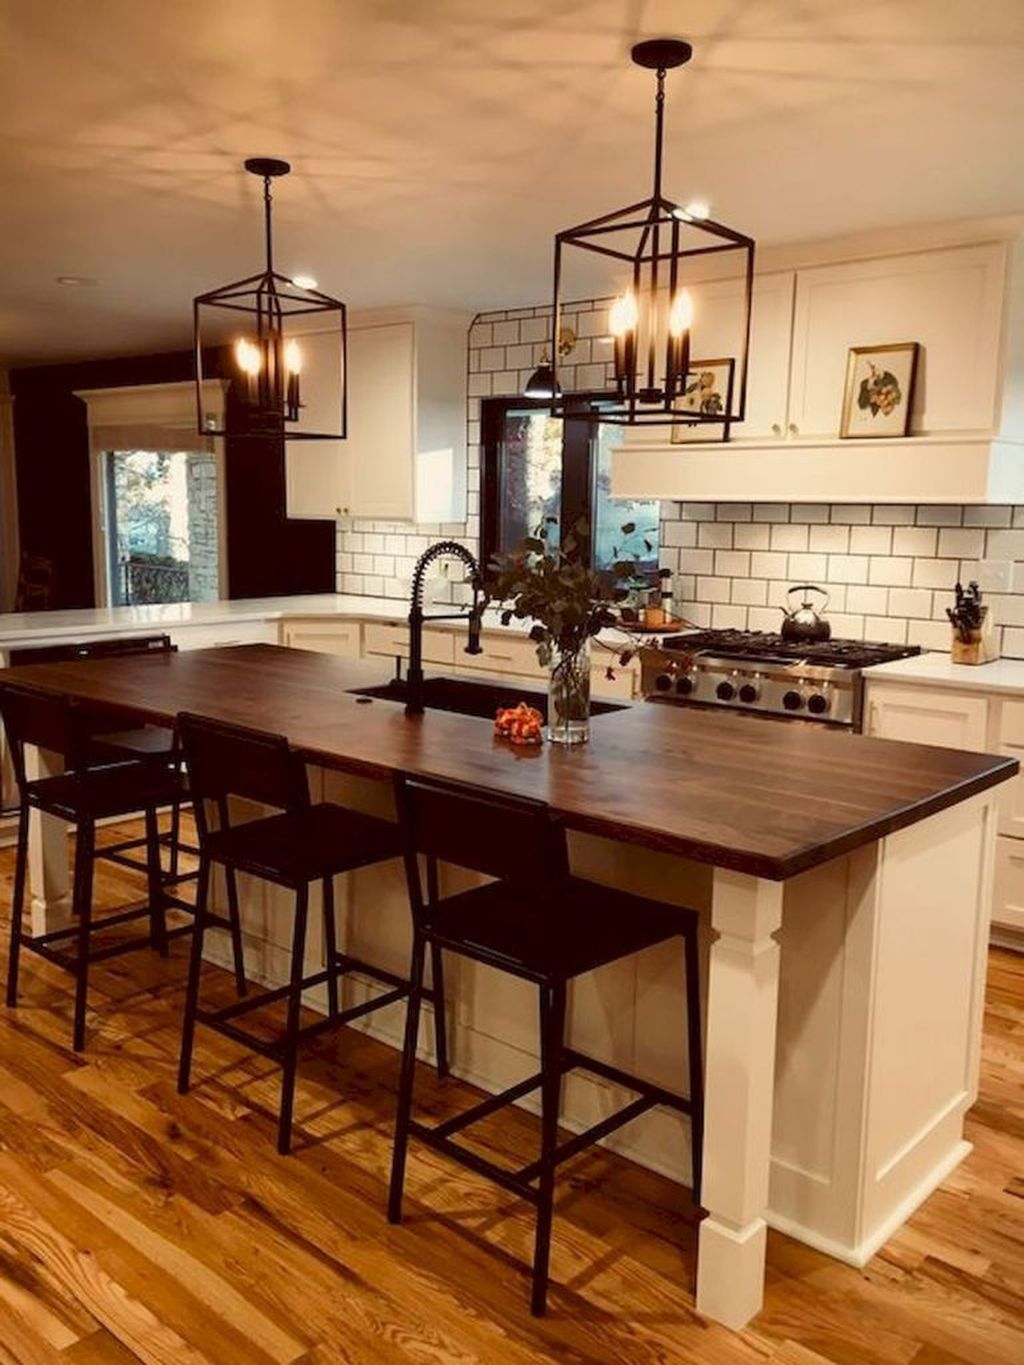 Cool Diy Kitchen Design Ideas You Will Definitely Want To Keep 31